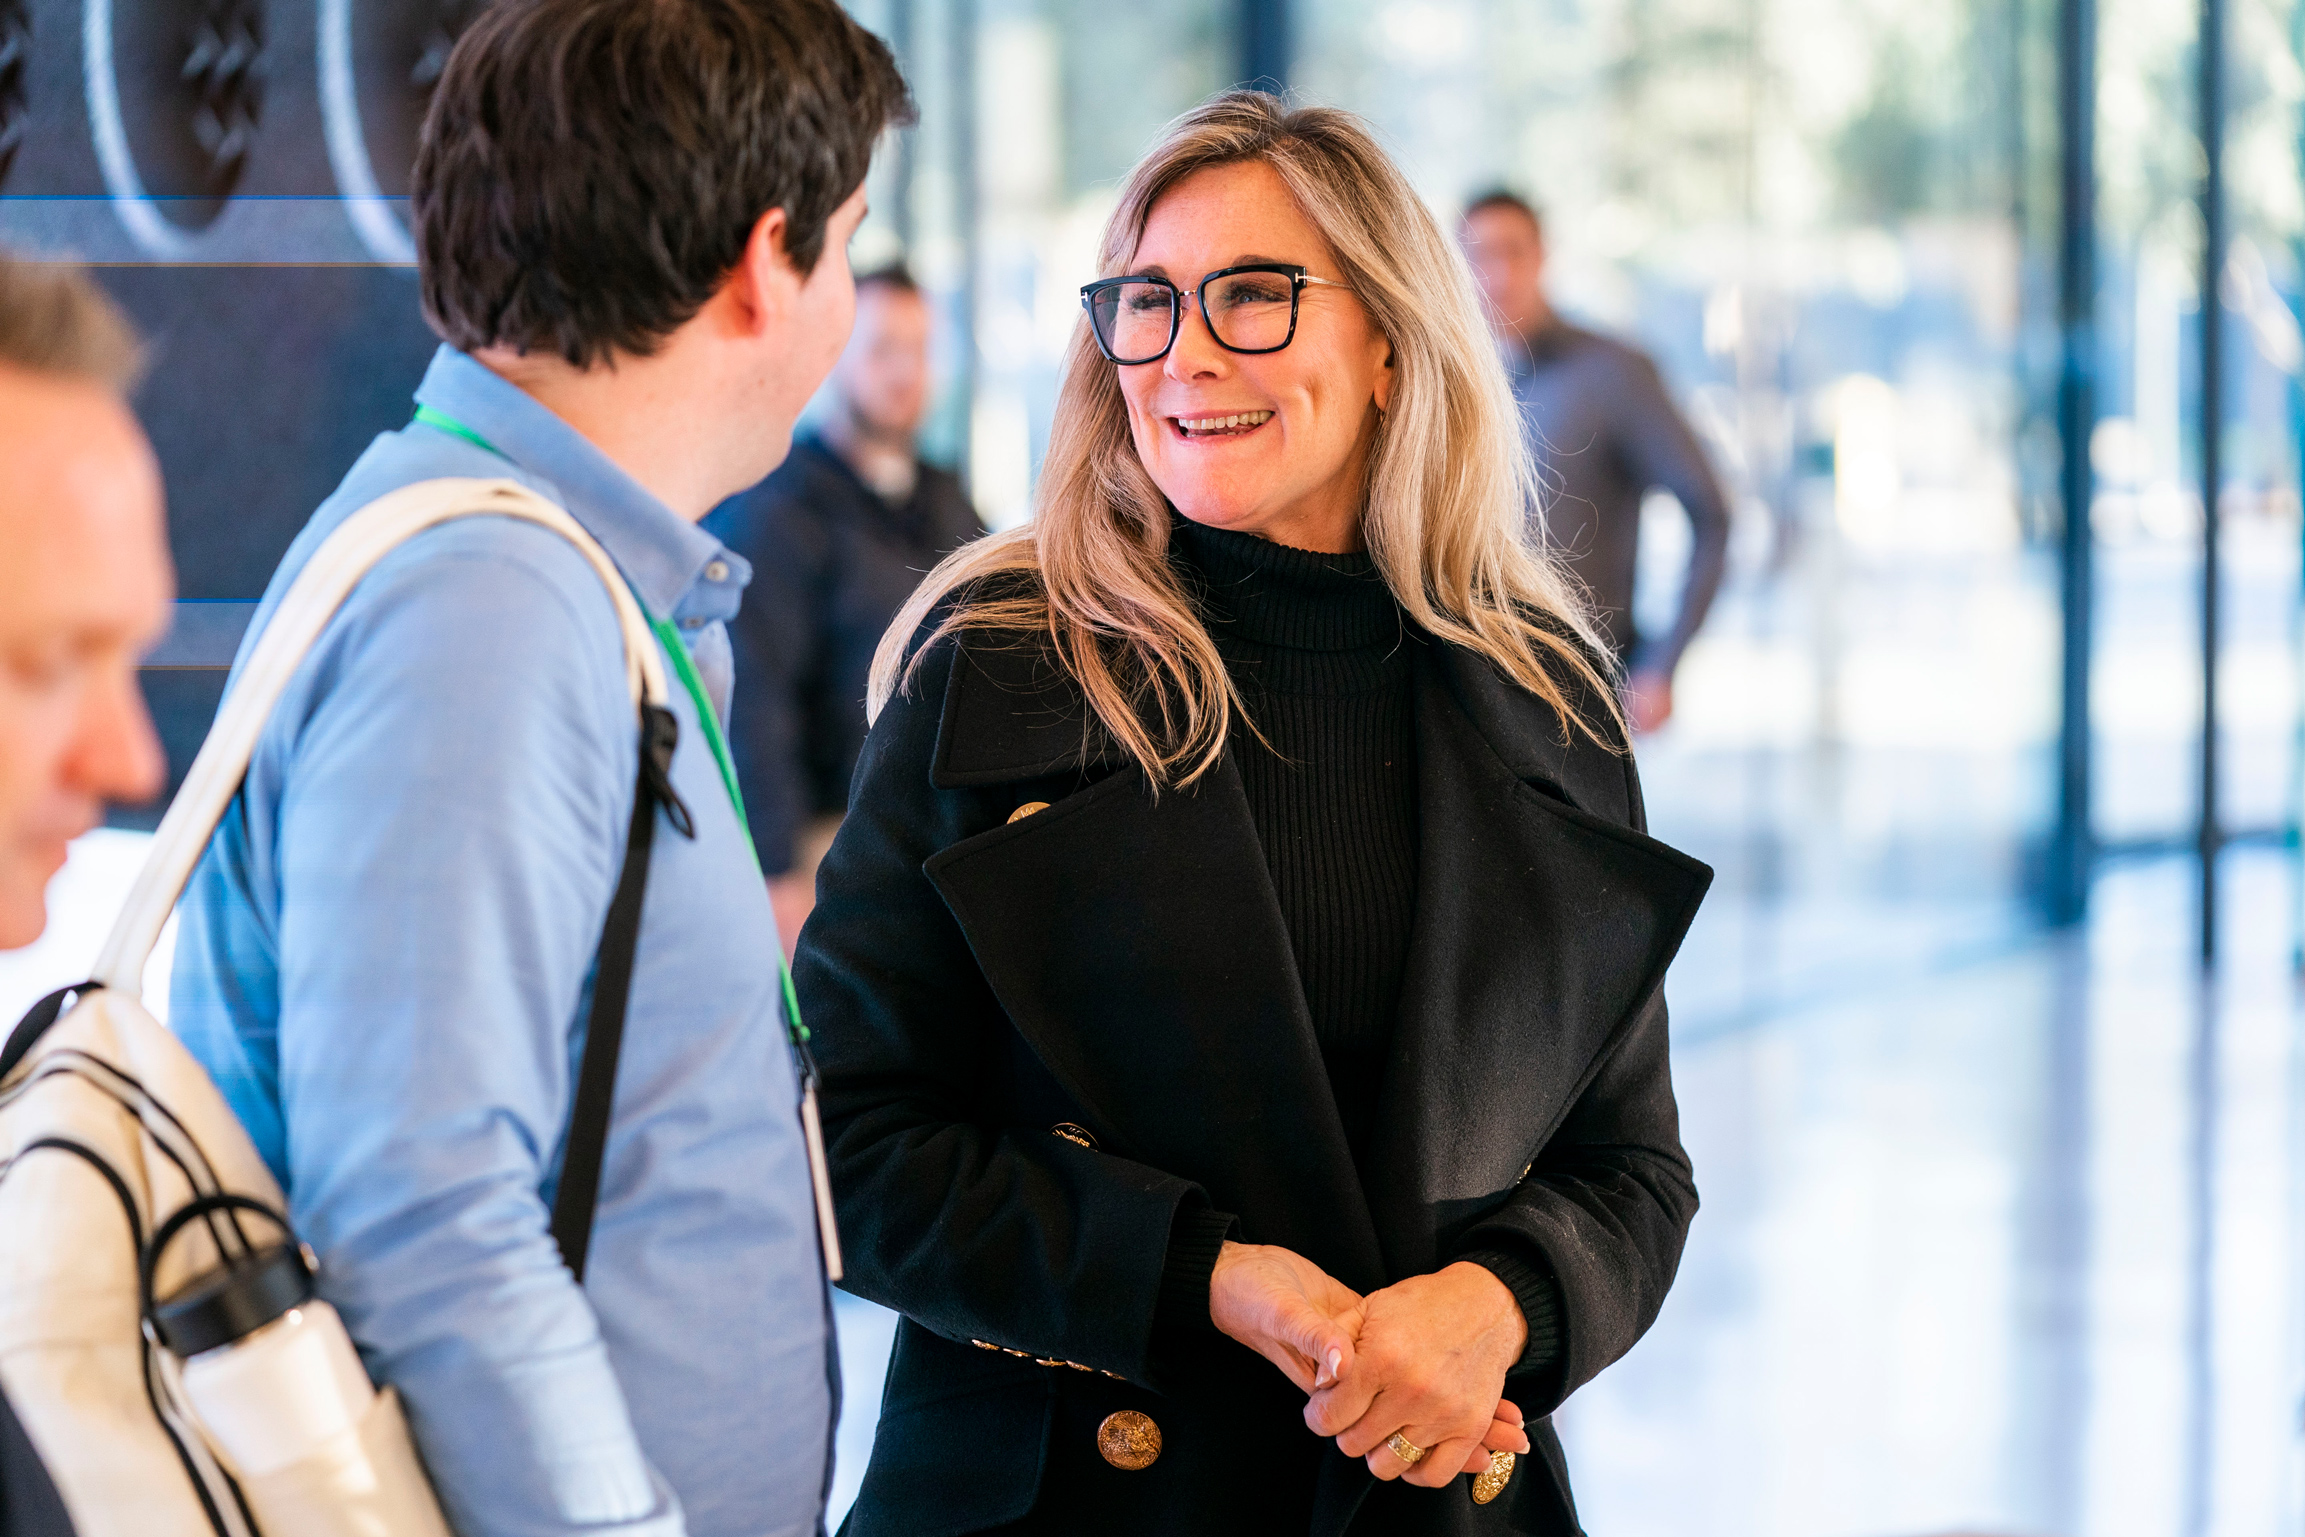 """If we encourage people to connect more, then maybe that's a part of enriching their lives,"" Angela Ahrendts, SVP of Retail at Apple. (Photo: Apple)"